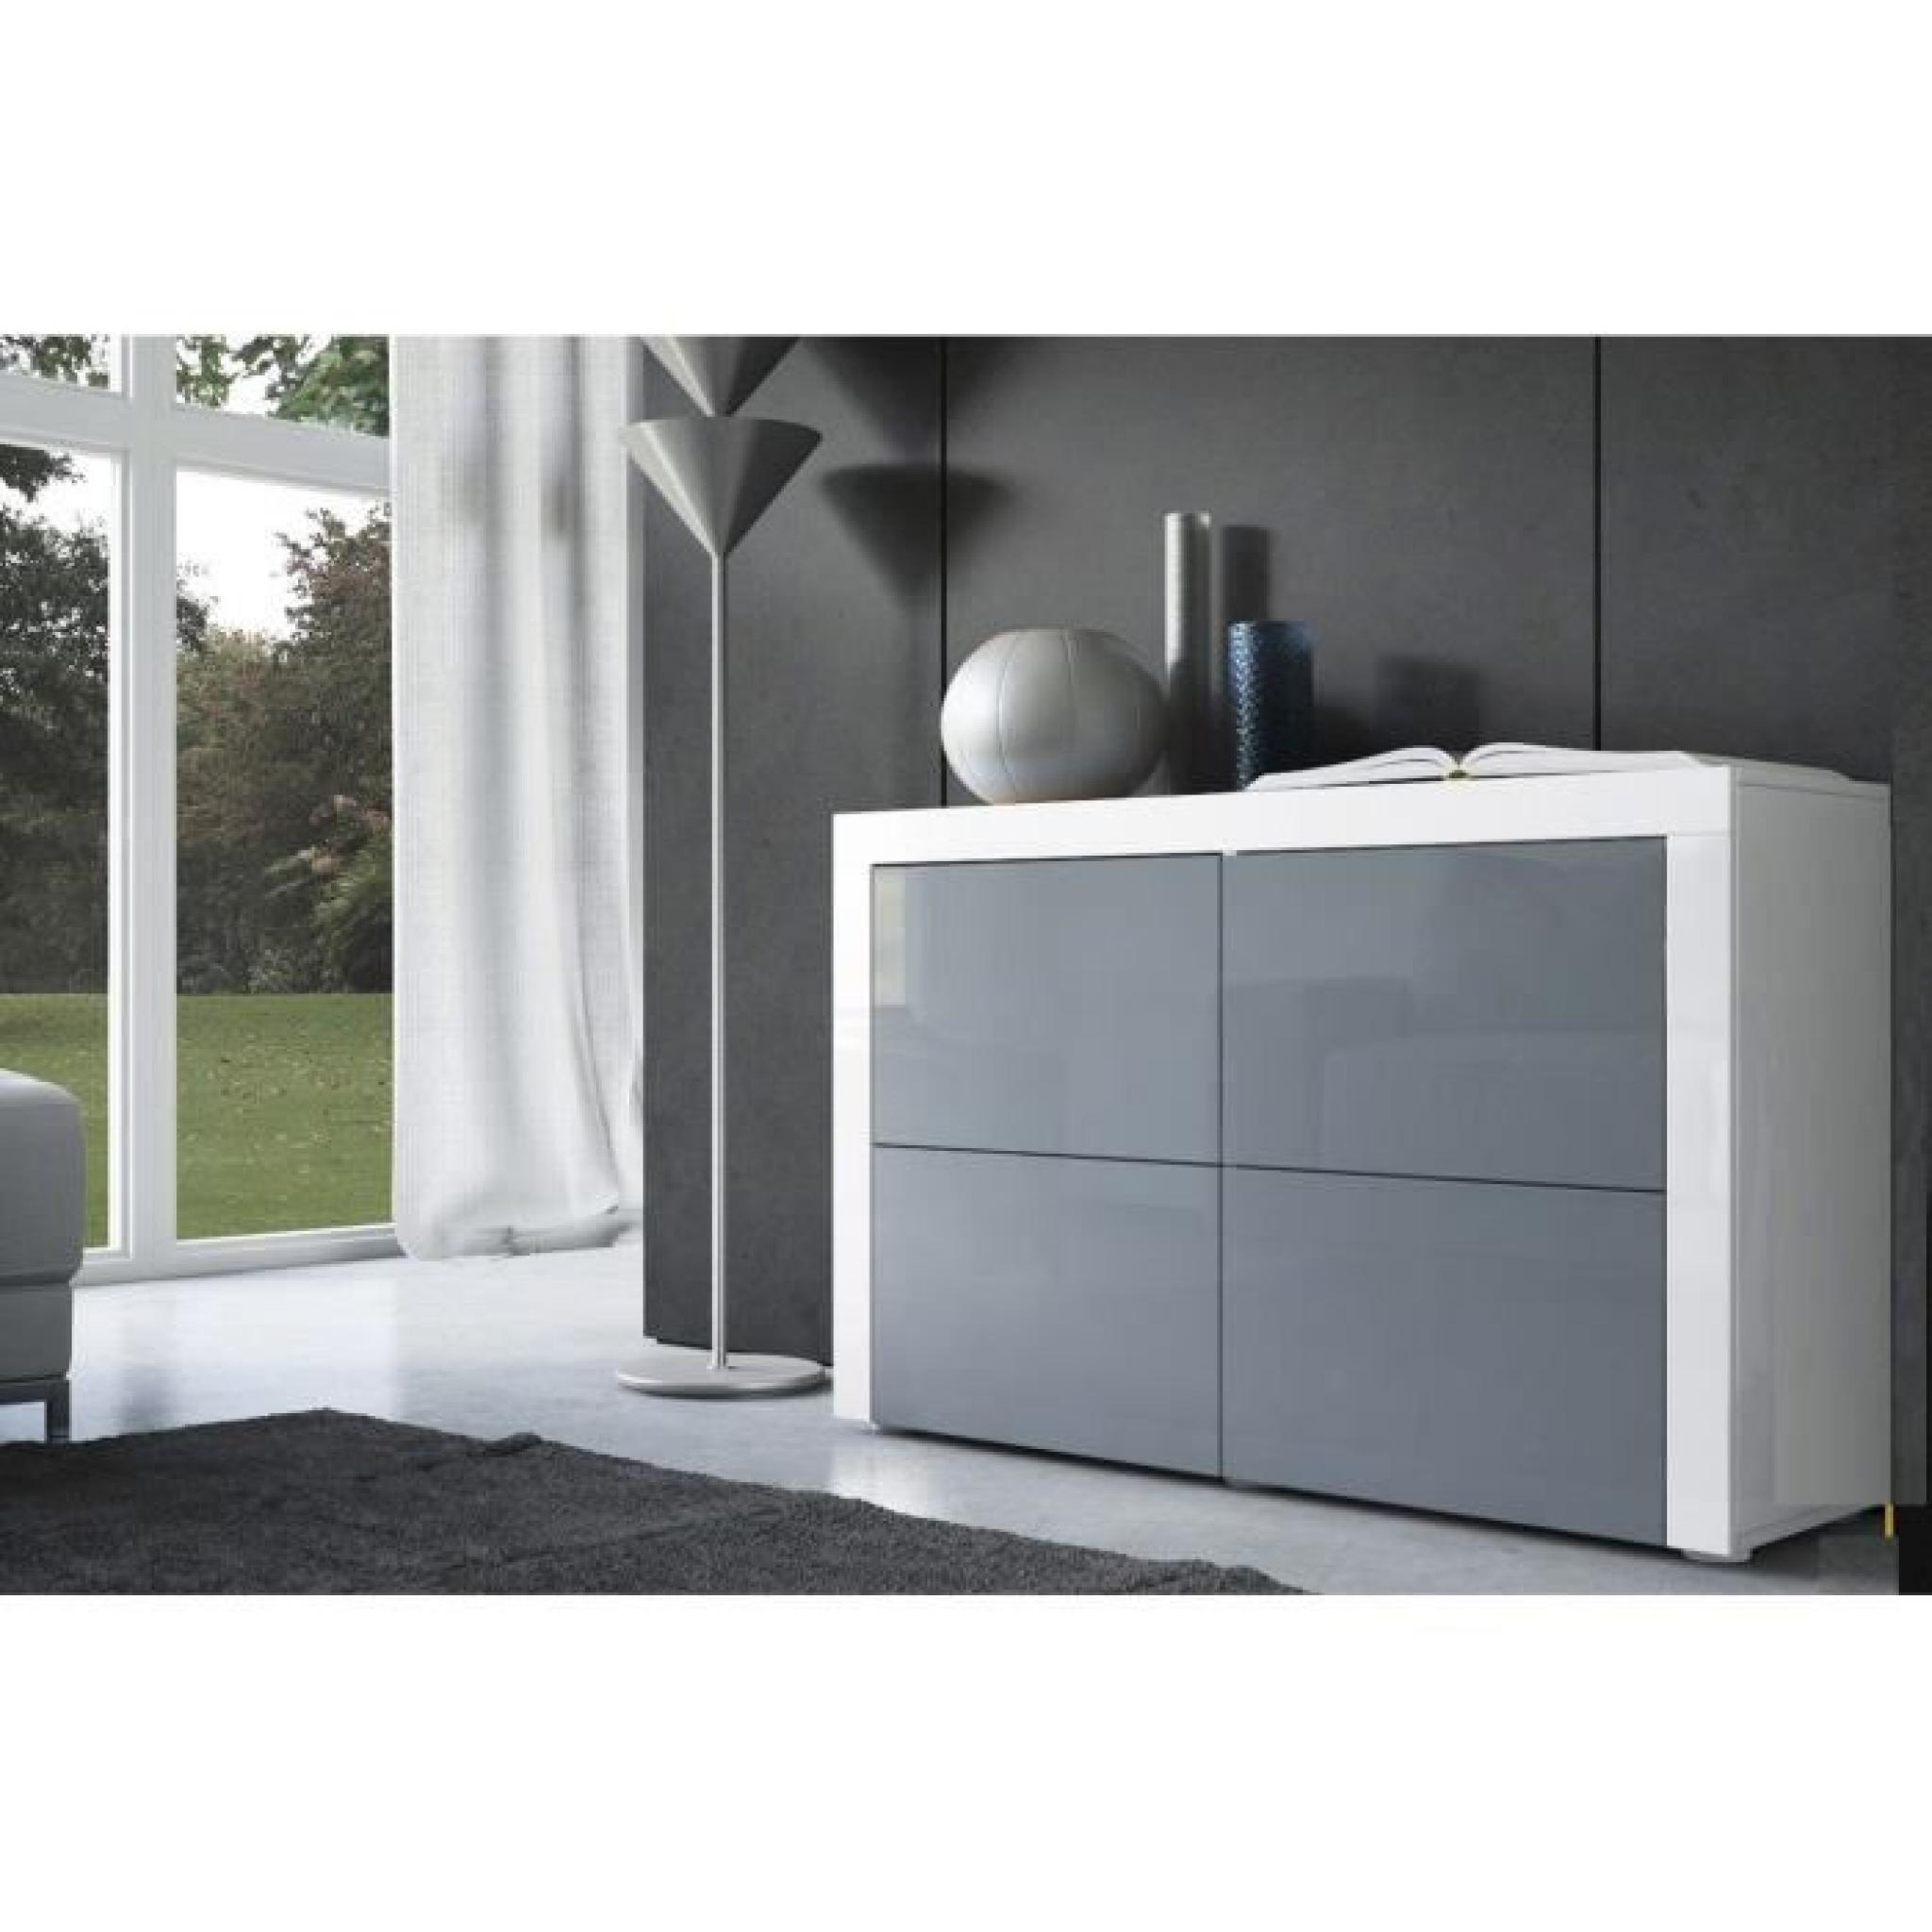 commode blanche et grise 110cm achat vente commode pas cher couleur et. Black Bedroom Furniture Sets. Home Design Ideas